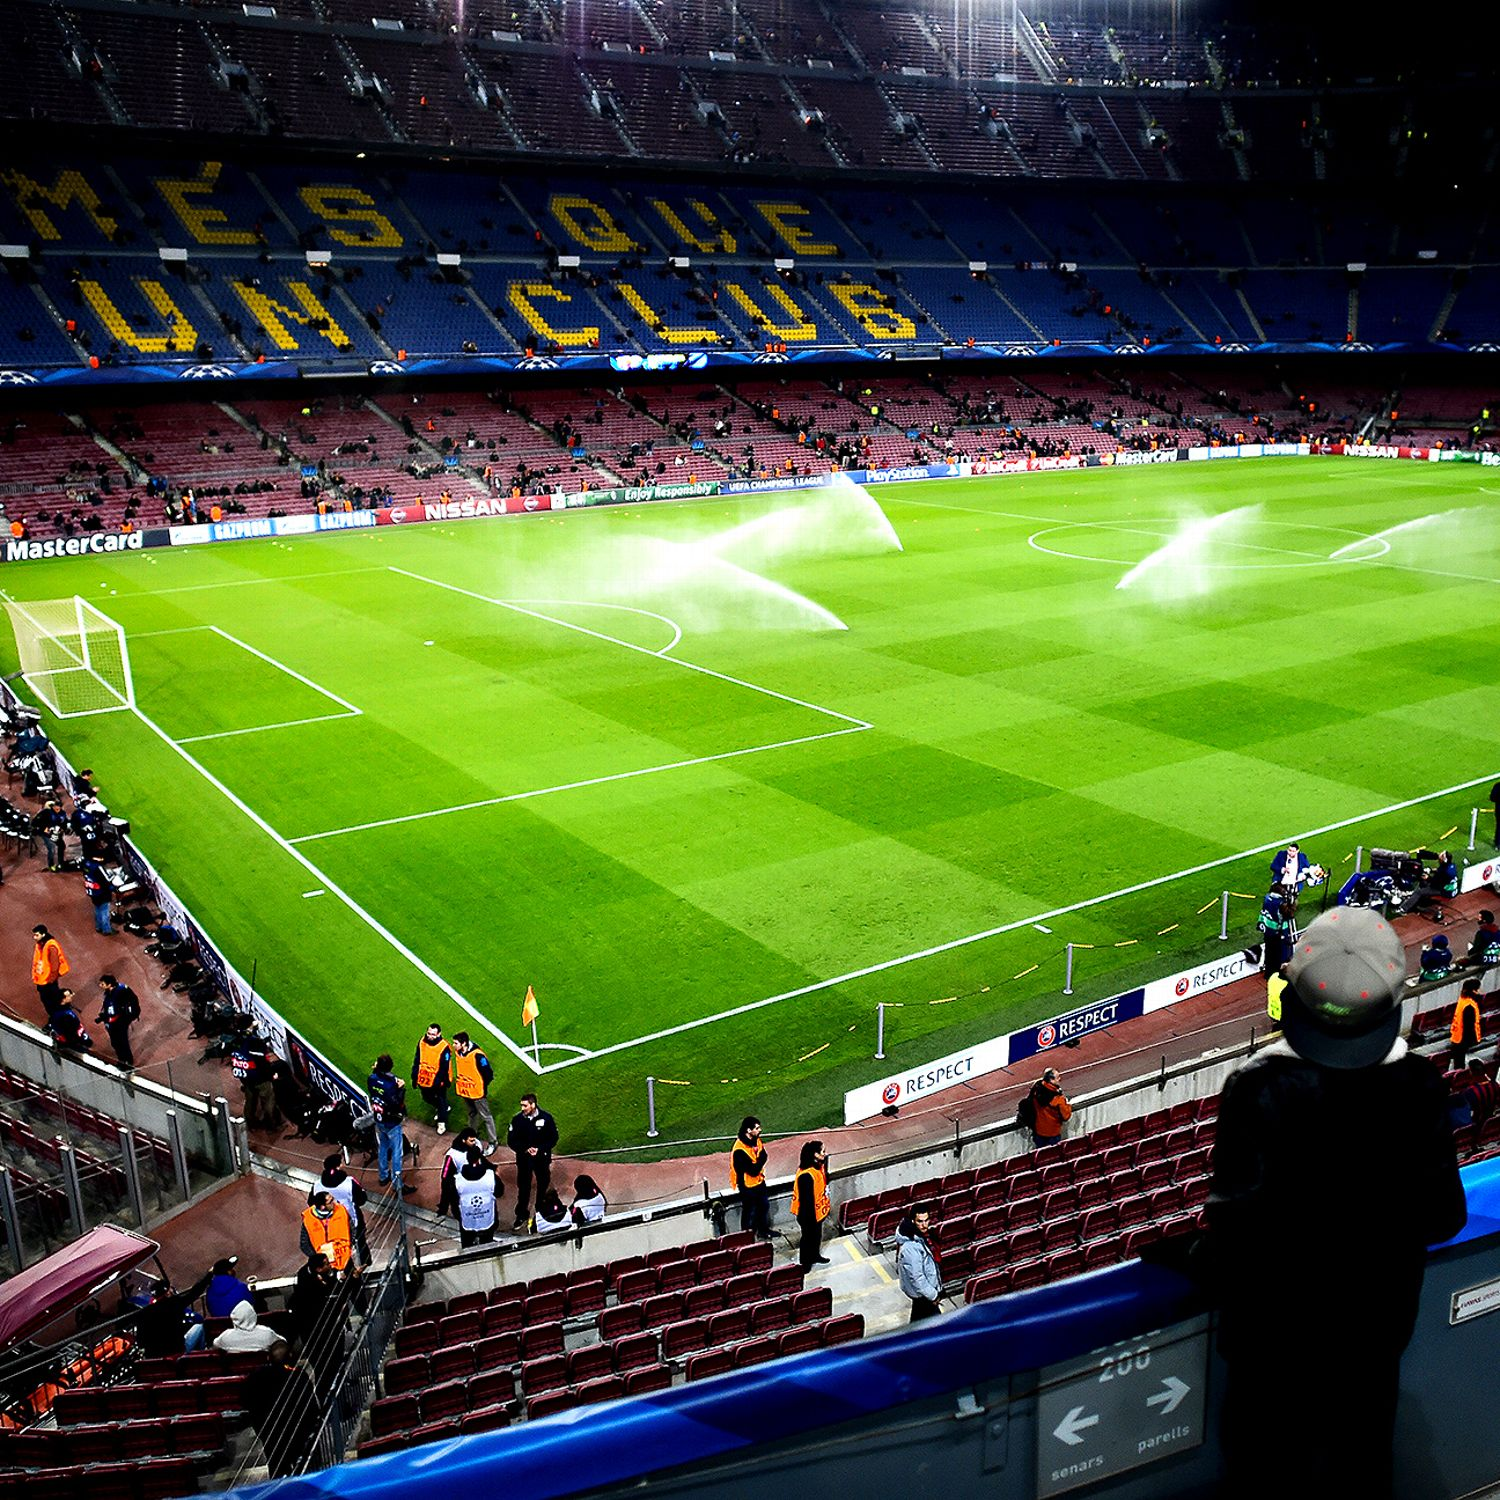 Liverpool V Barcelona Live Matchday Blog: Understanding CAS Ruling And The Violations